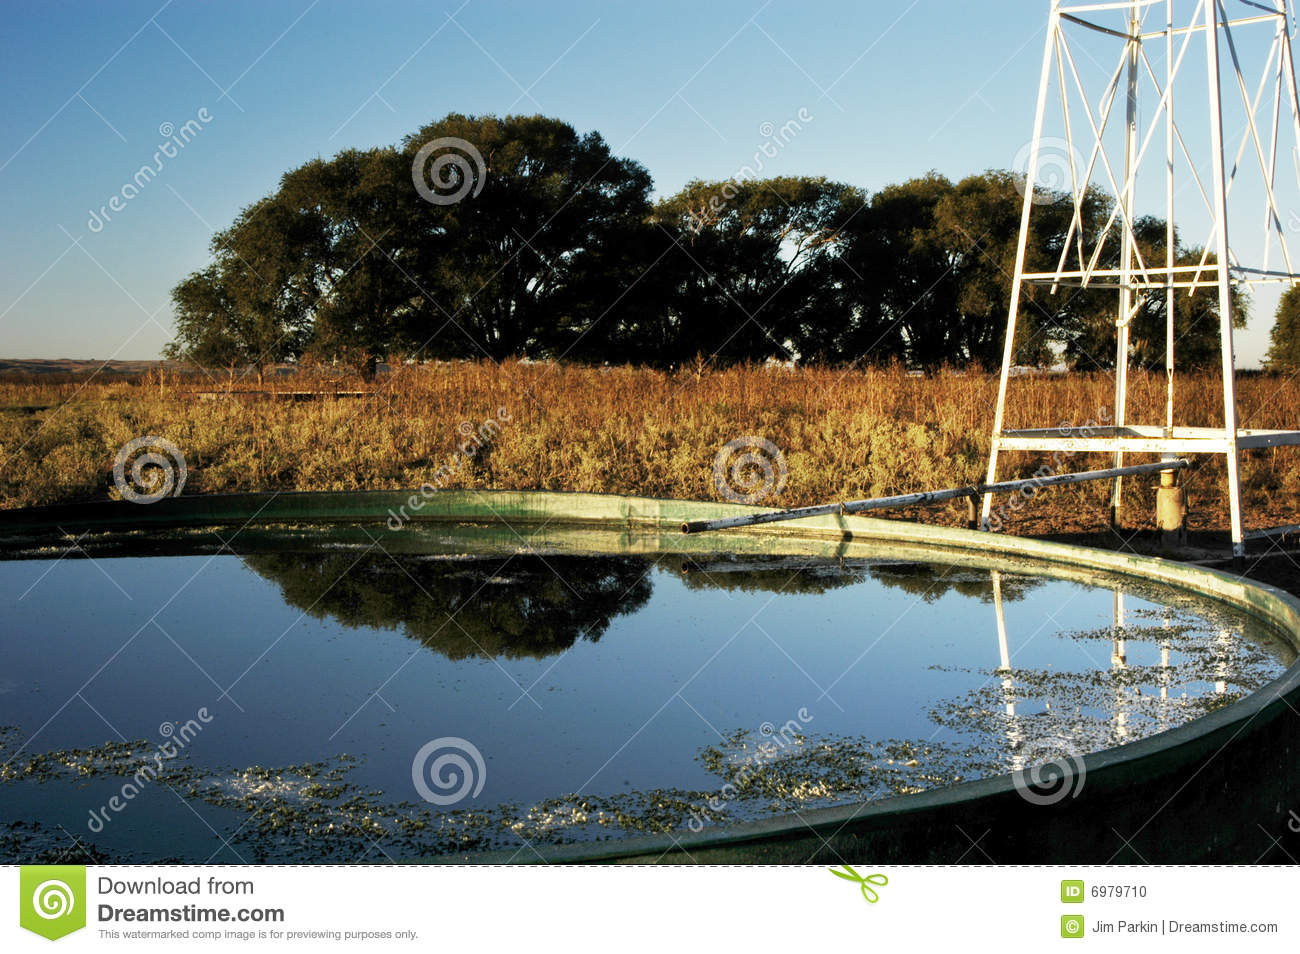 Windmill Amp Stock Tank On A Ranch In Texas Stock Photo